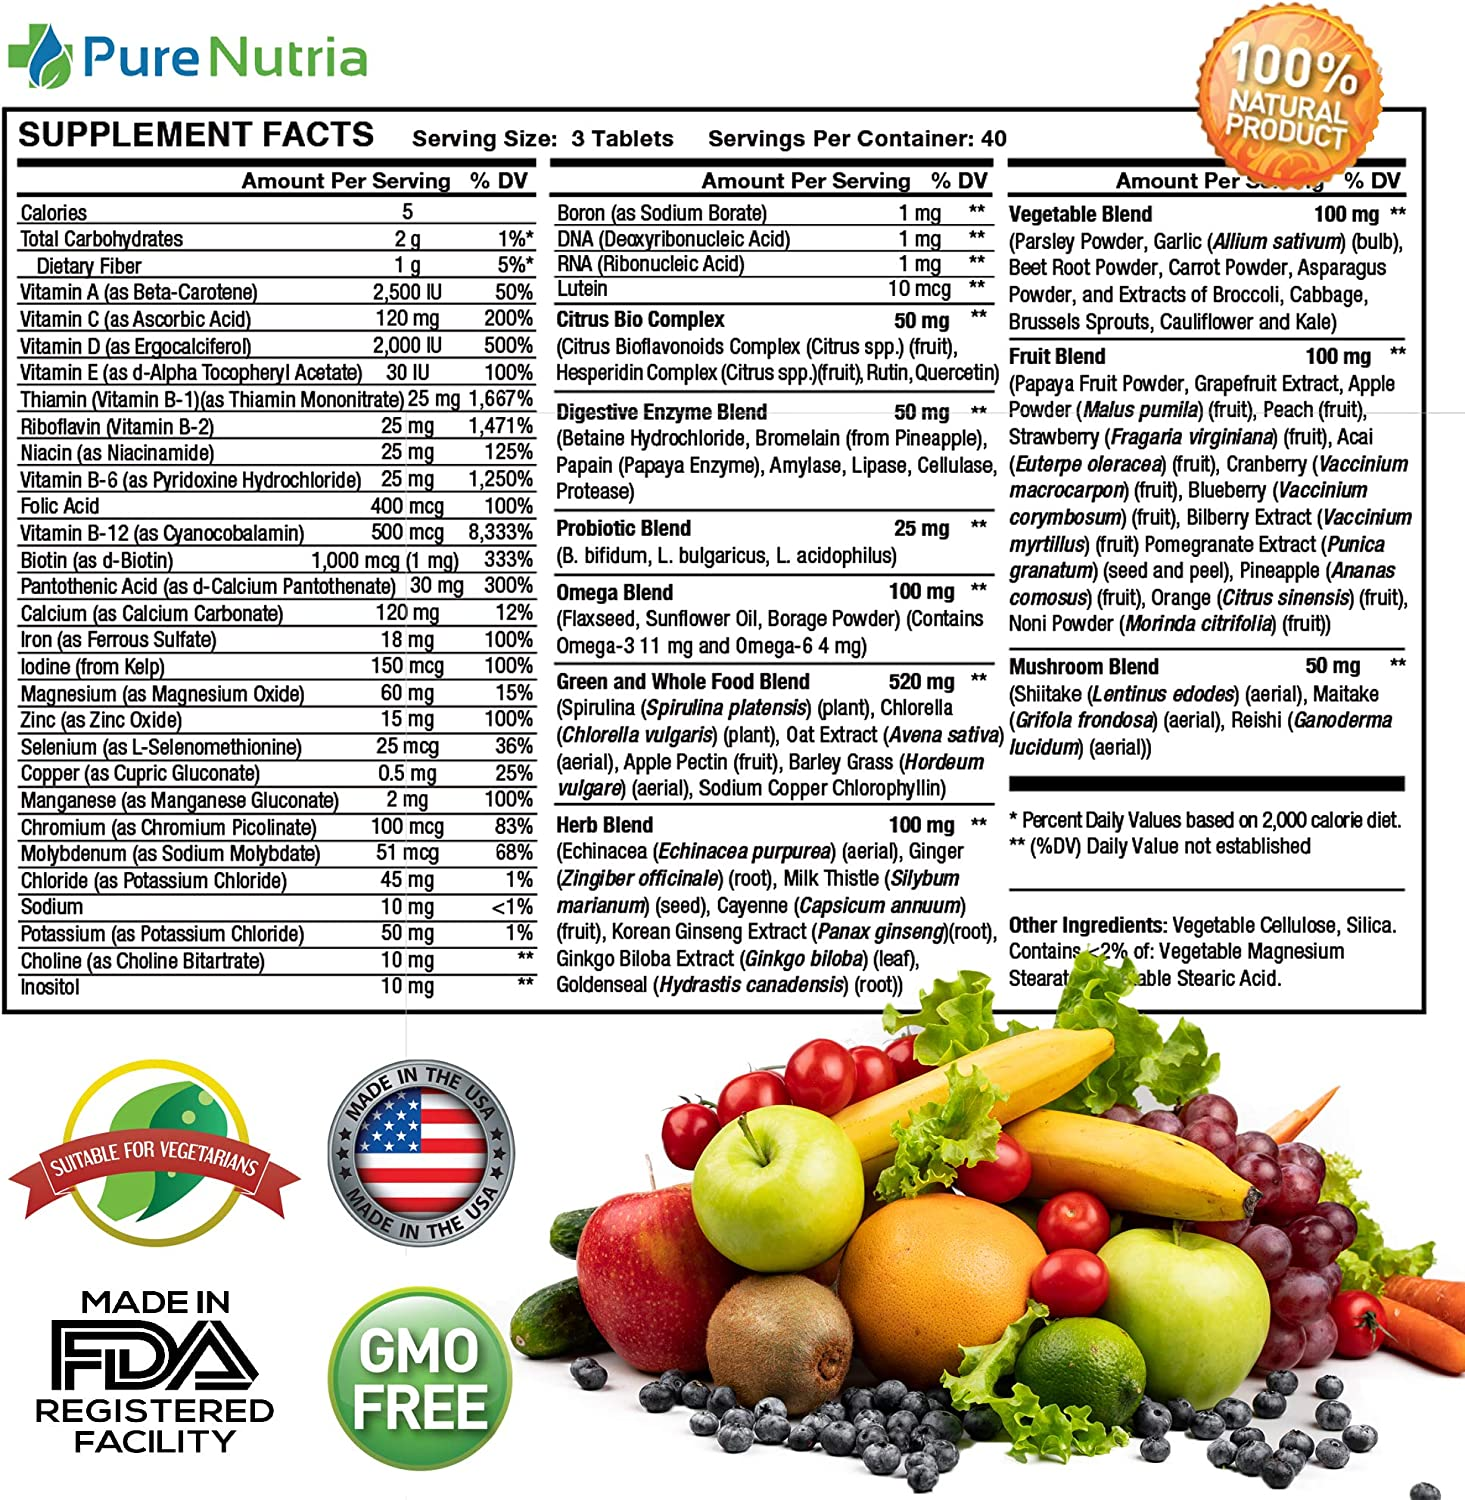 Whole Food MultiVitamin and Minerals with Probiotic Enzymes - 120 Multivitamins for Women and Men - Packed with WholeFood and Herbal Ingredients - Powerful Antioxidants for Digestive Support: Health & Personal Care